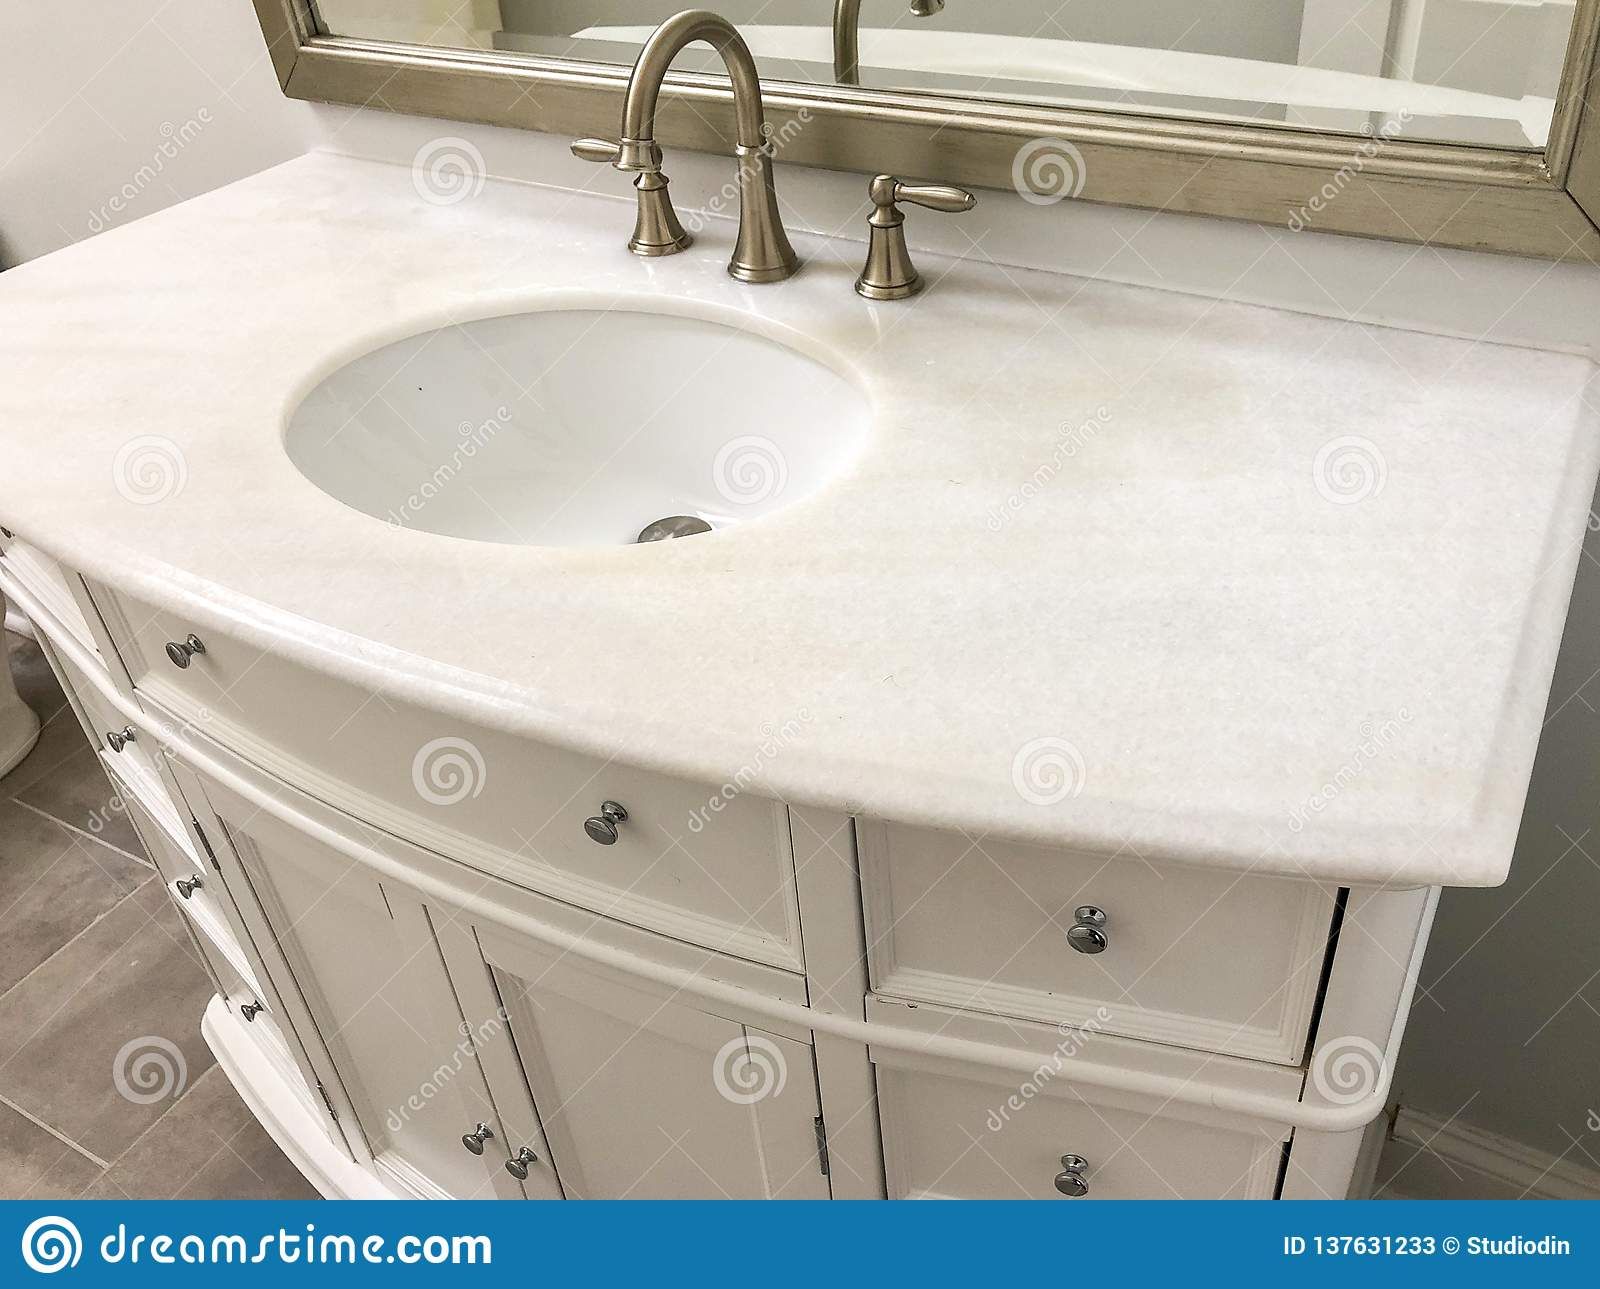 Traditional Bathroom With White Cabinets And Marble Countertop Two Sinks And Faucets With Stone Floor Stock Image Image Of Cabonets Island 137631233